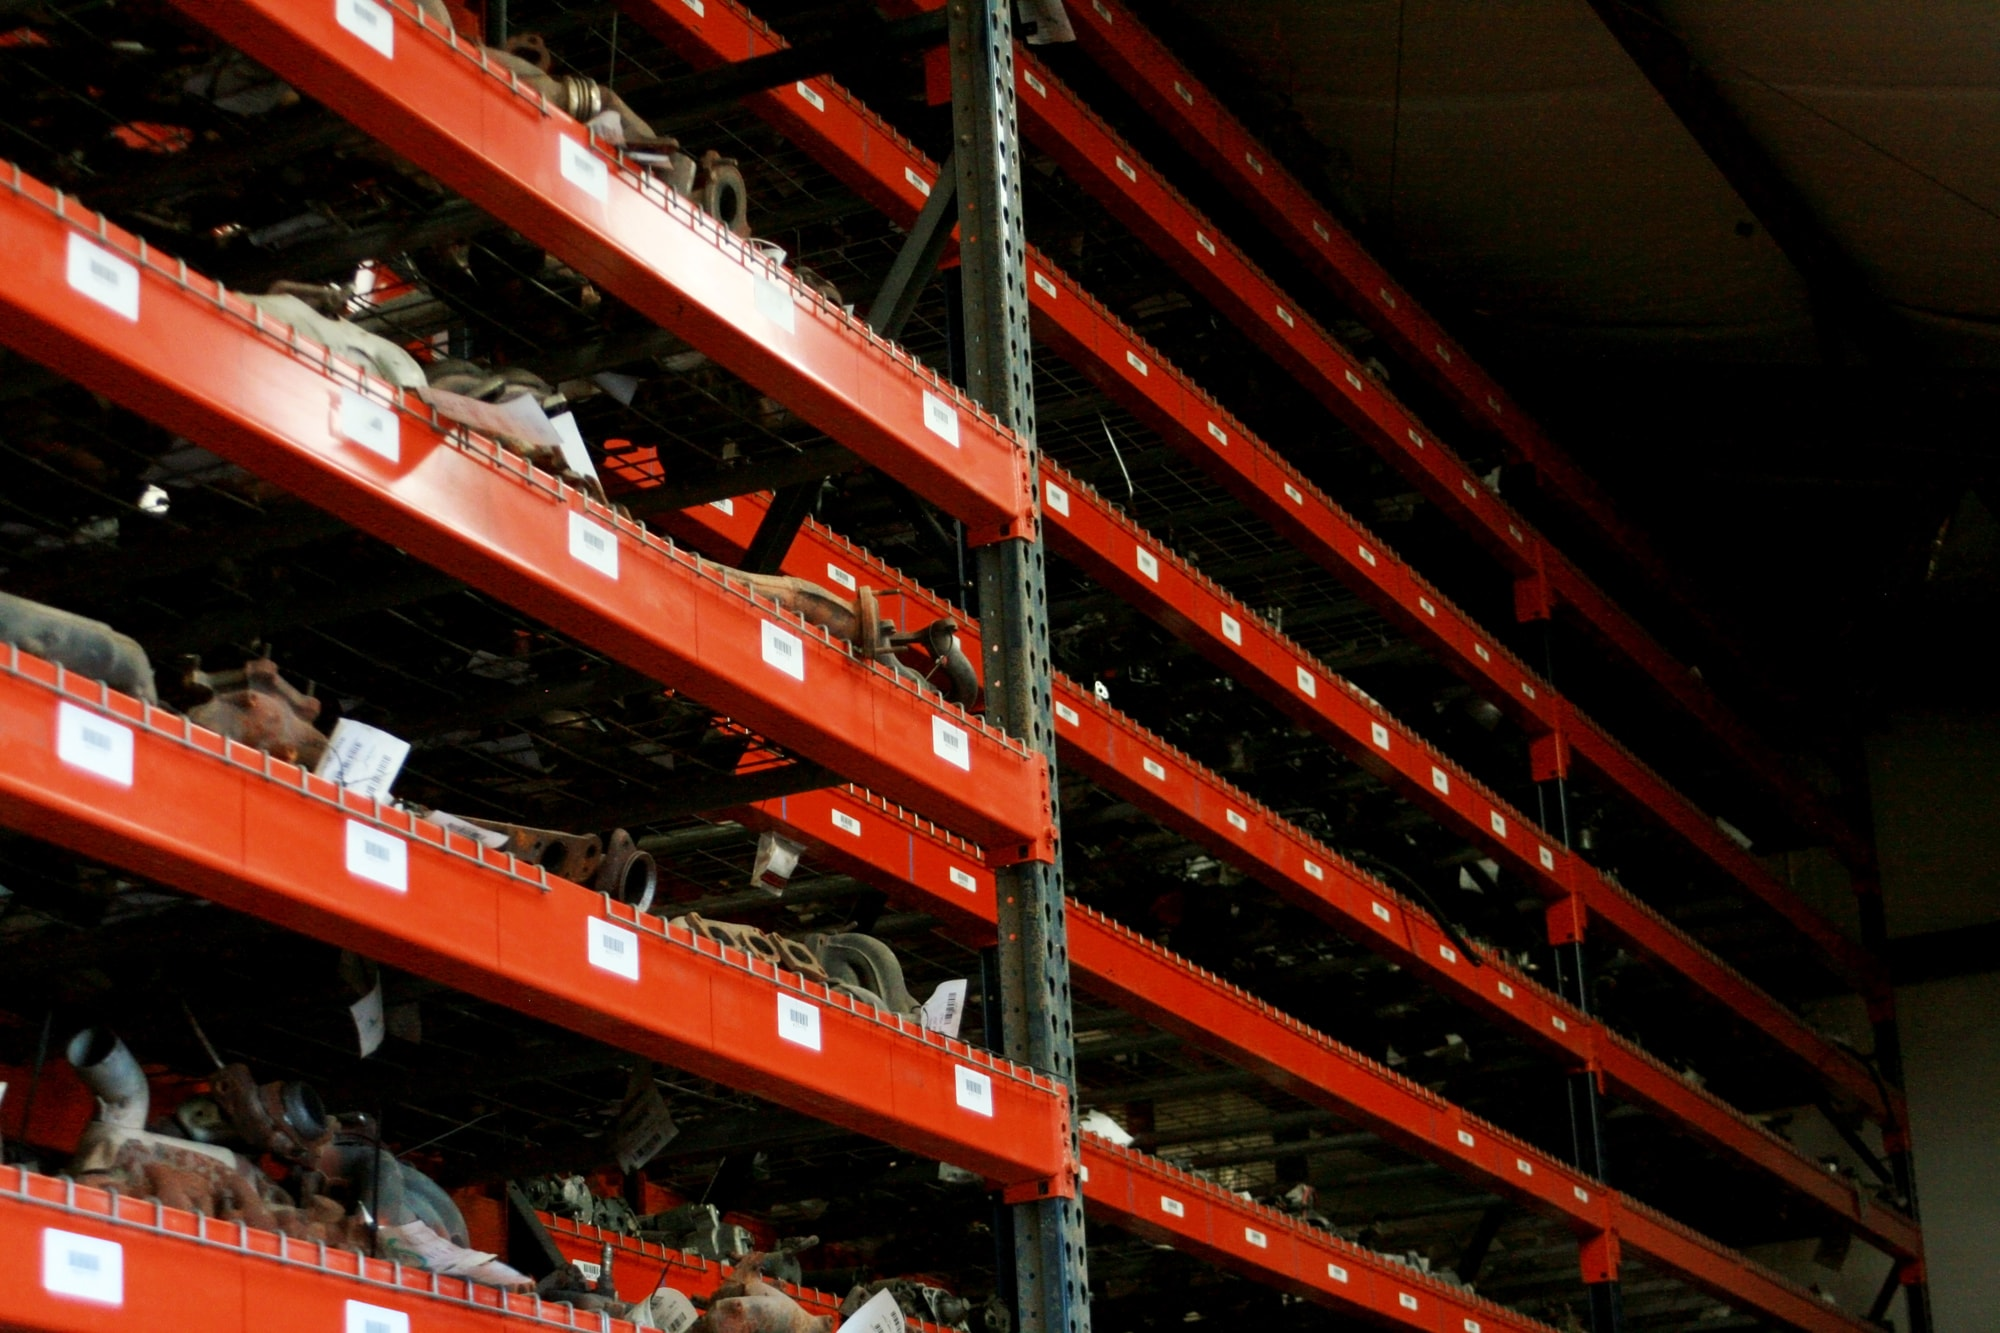 Shelfs of used auto parts